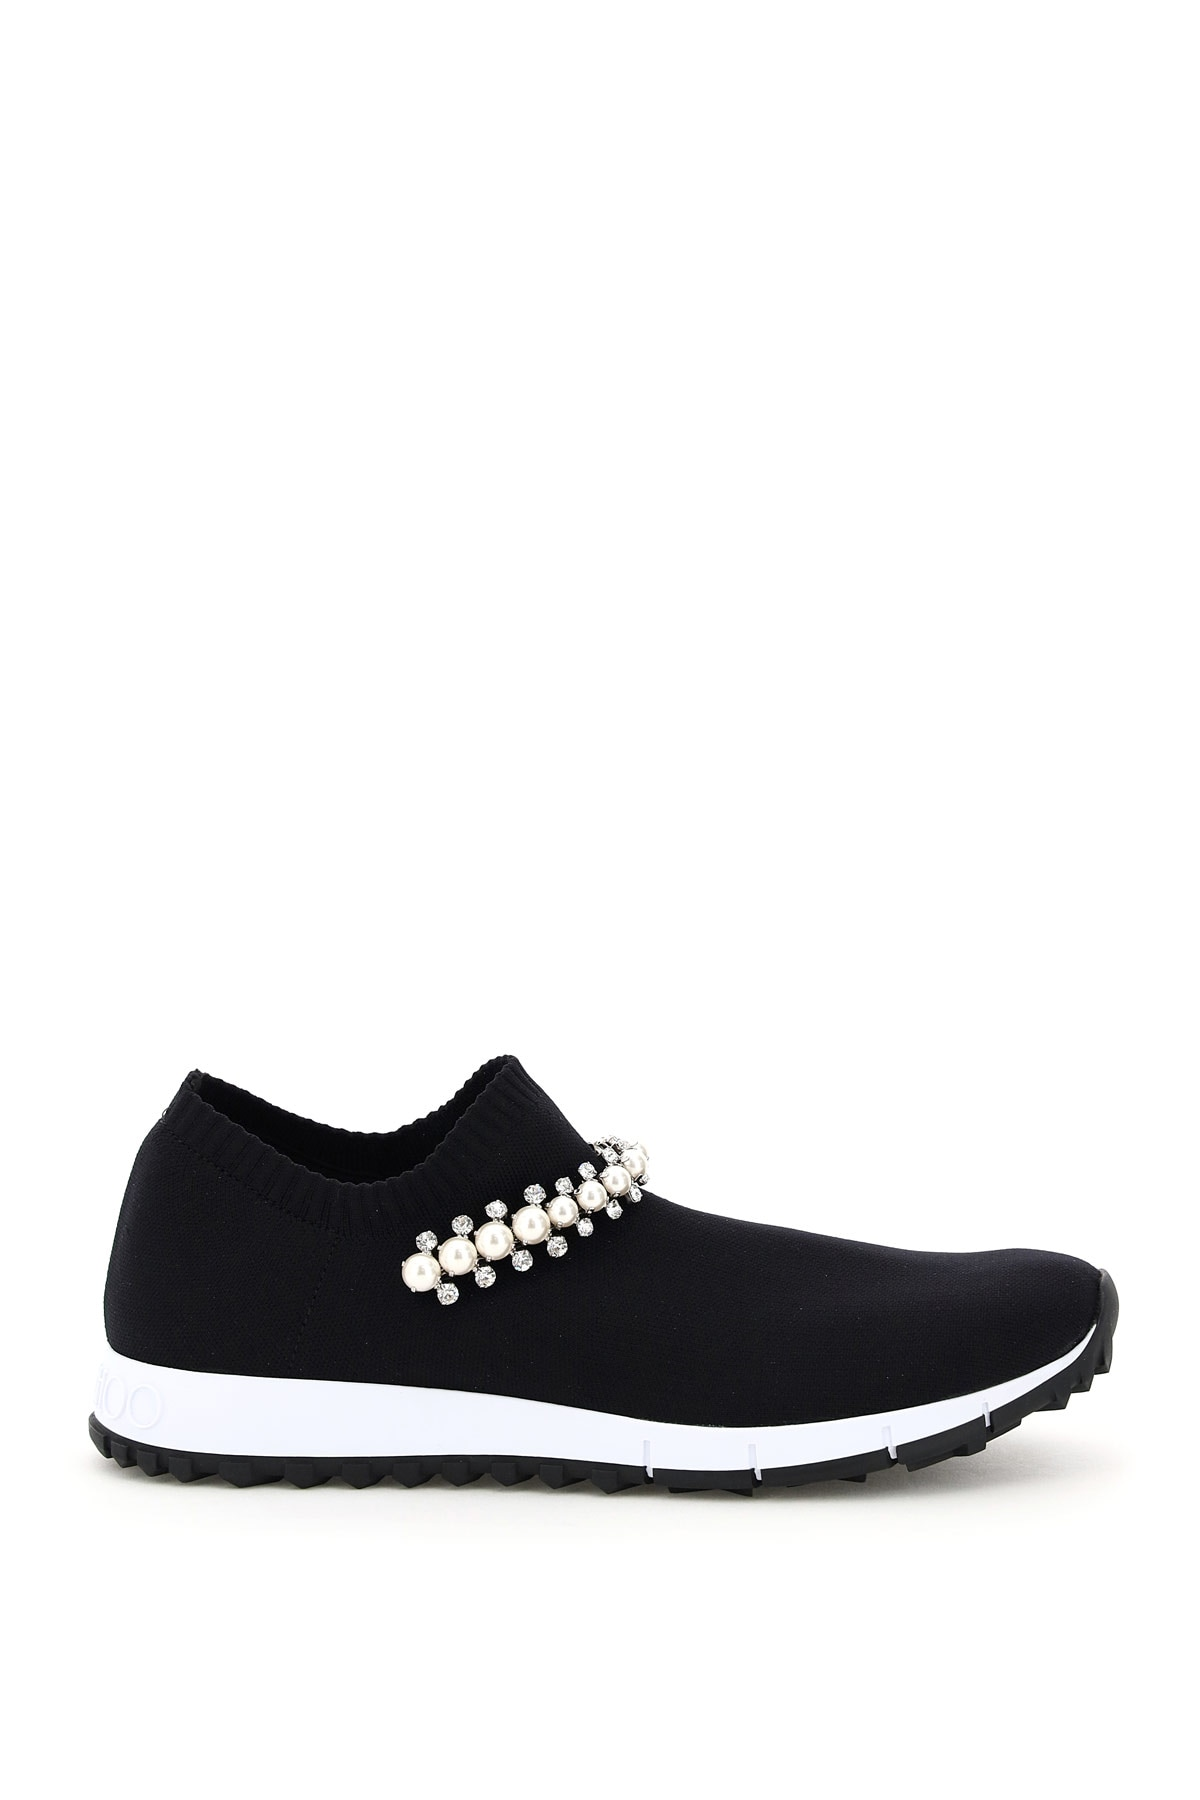 JIMMY CHOO VERONA SNEAKERS WITH CRYSTALS AND PEARLS 39 Black Technical